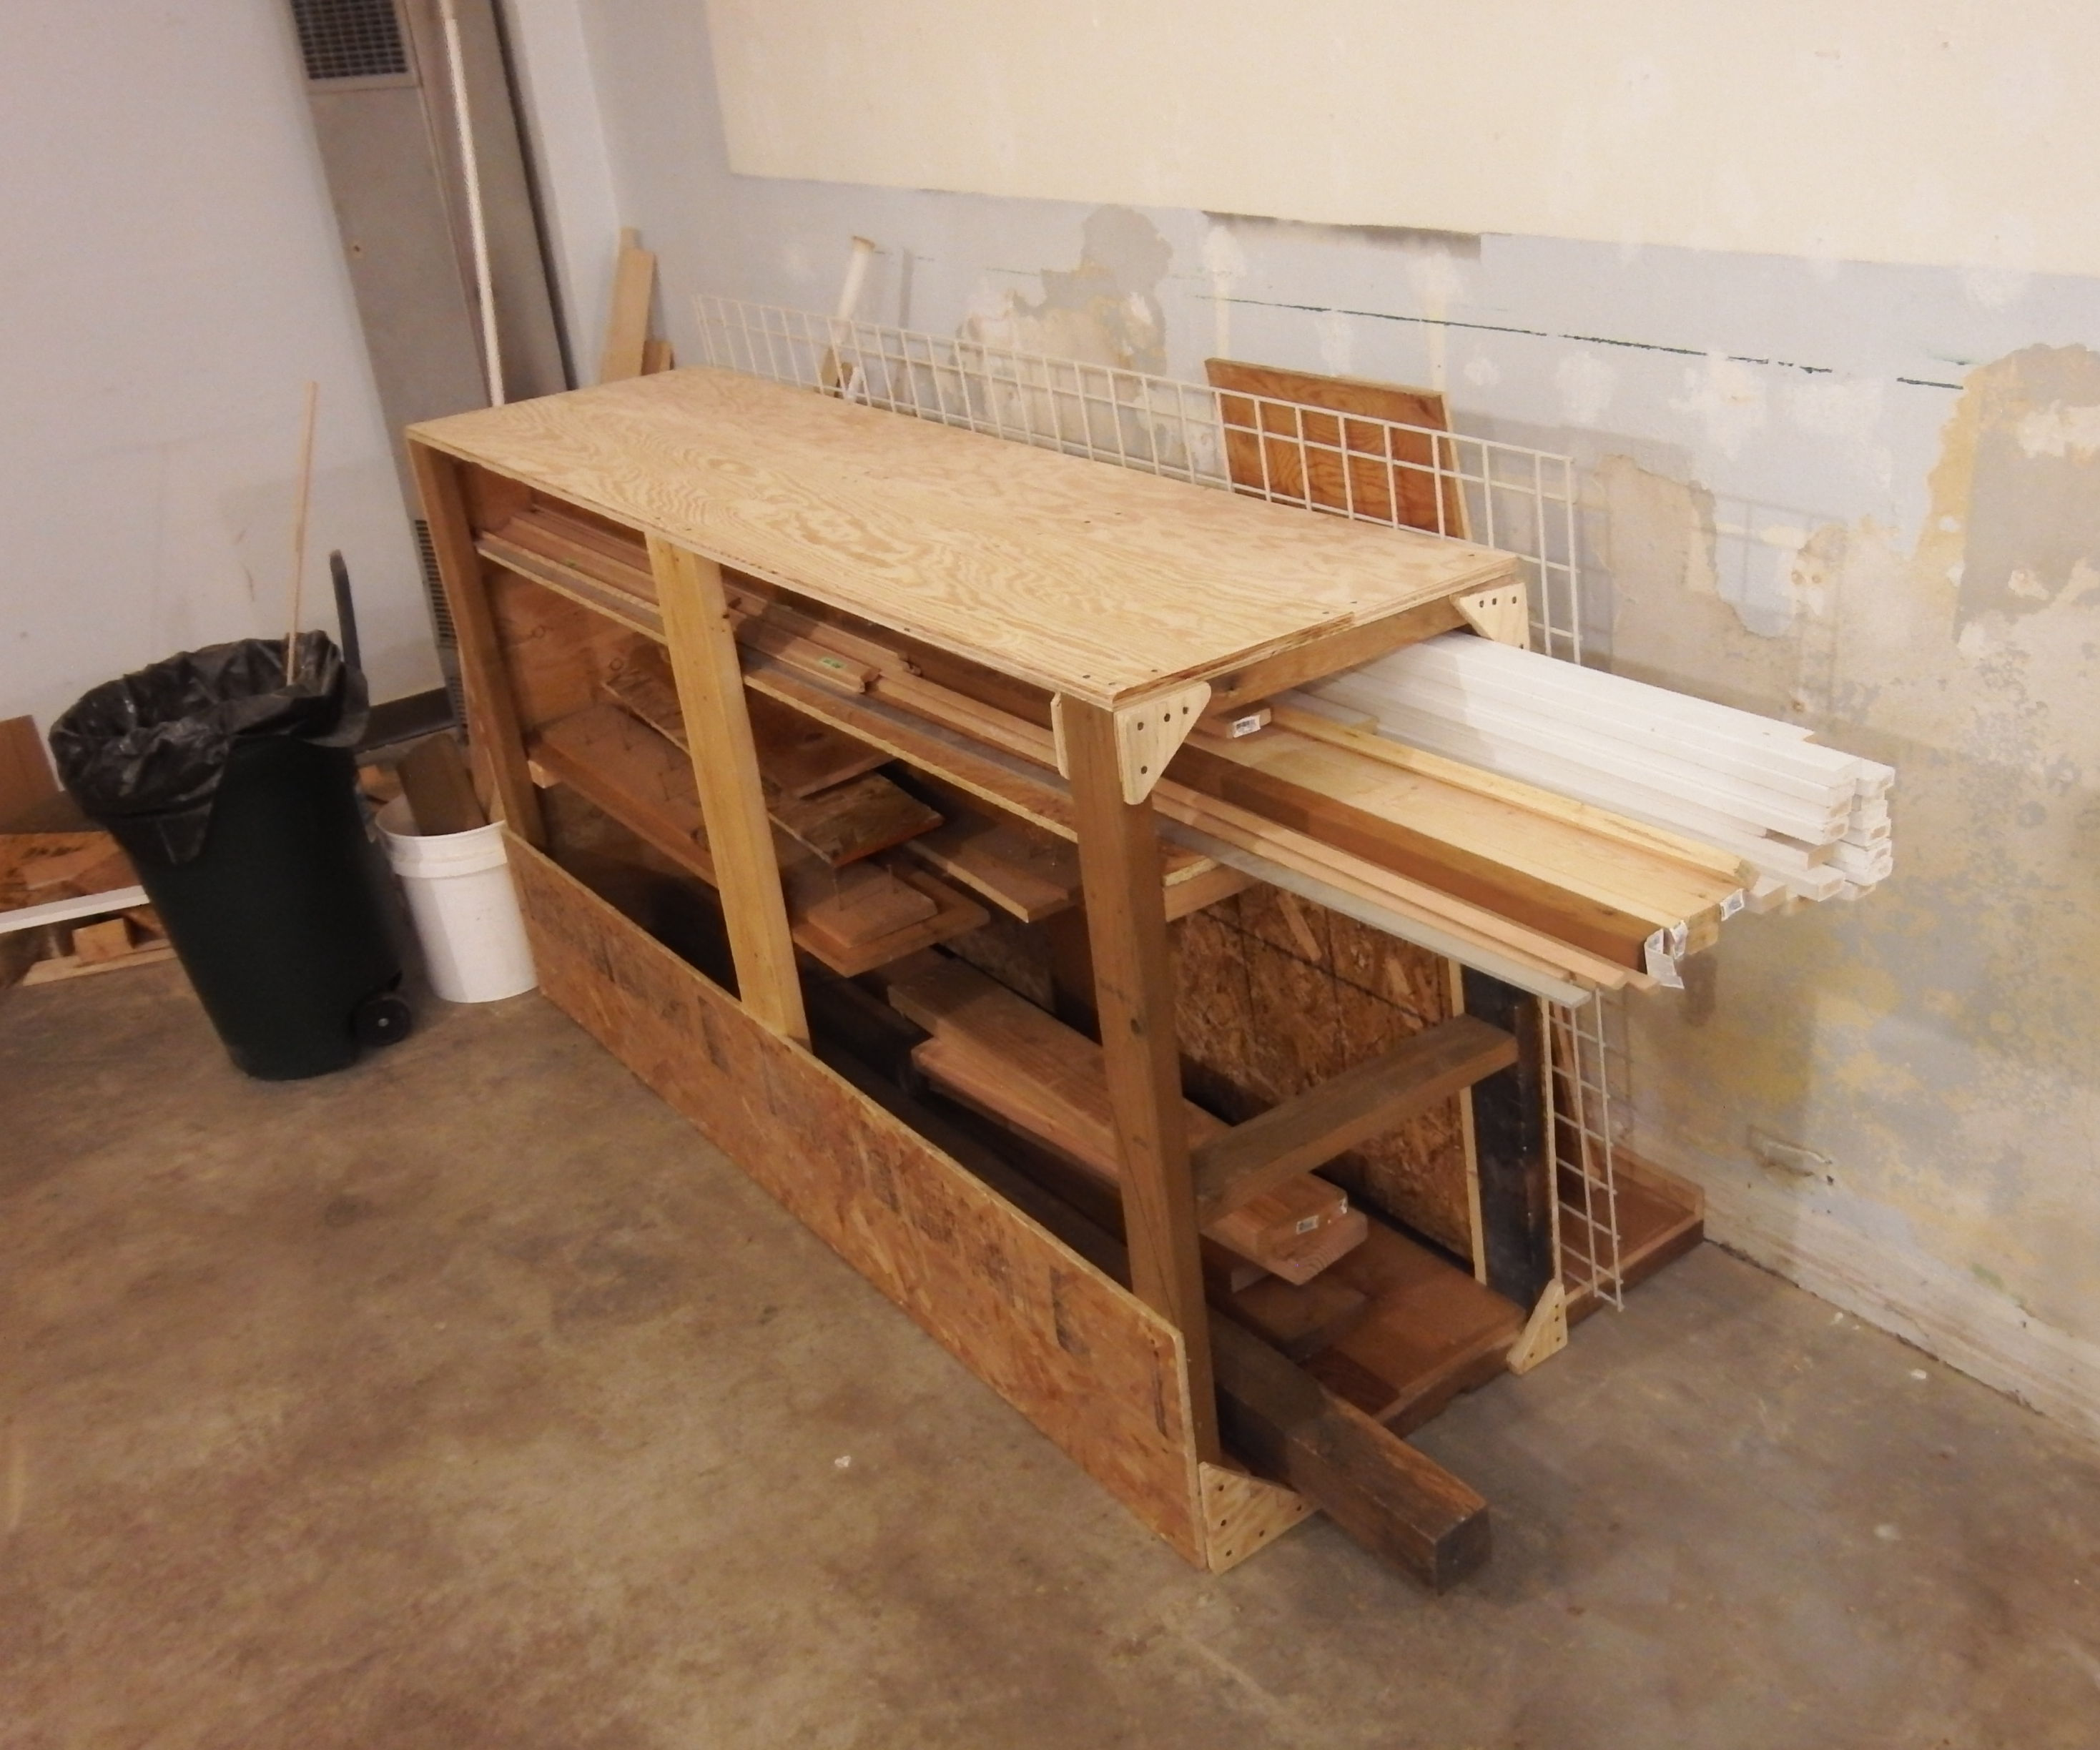 Lumber Storage Rack Made from Scrap